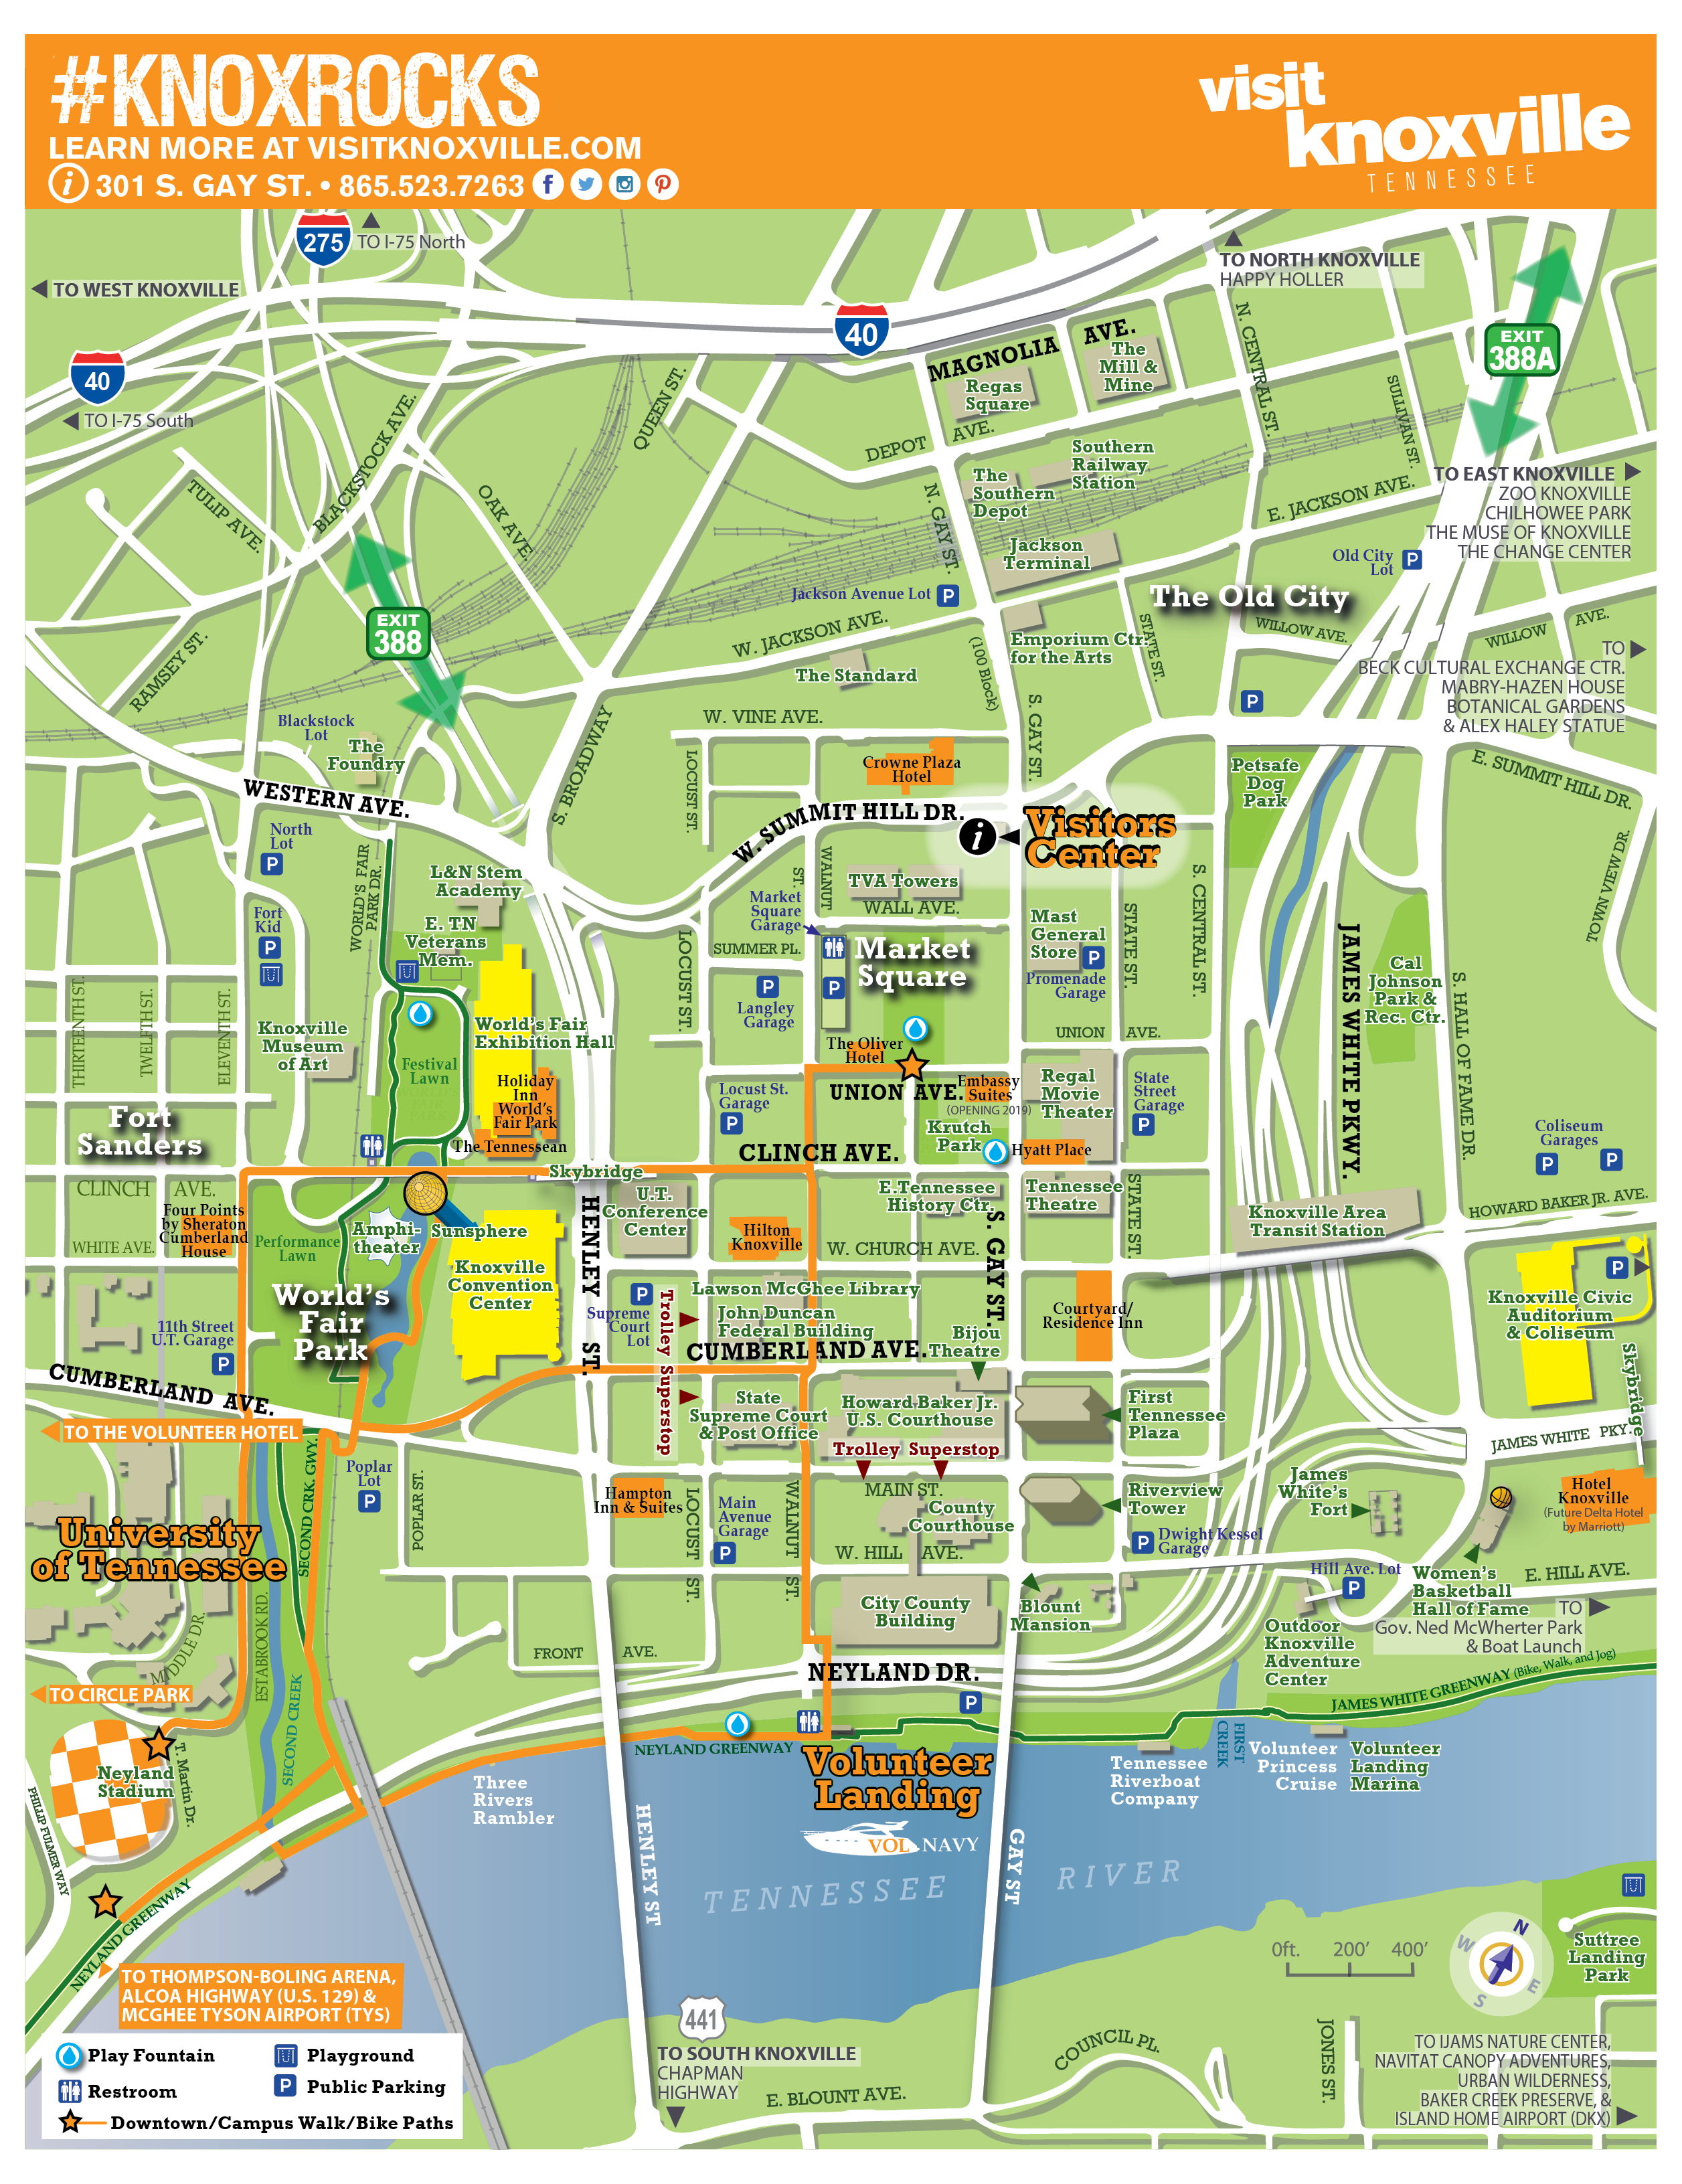 University of Tennessee Football Game Day Information on spring hill tennessee state map, knoxville tennessee hotels, knoxville florida map, knoxville tennessee state outline, florence south carolina state map, gatlinburg tennessee state map, knoxville tennessee home, knoxville tennessee state flower, anderson south carolina state map, middletown ohio state map, knoxville michigan map, kingston tennessee state map, salt lake city utah state map, atlanta georgia state map, kingsport tennessee state map, knoxville tennessee wildlife, fairfax virginia state map, madison tennessee state map, old tennessee state map, dyersburg tennessee state map,